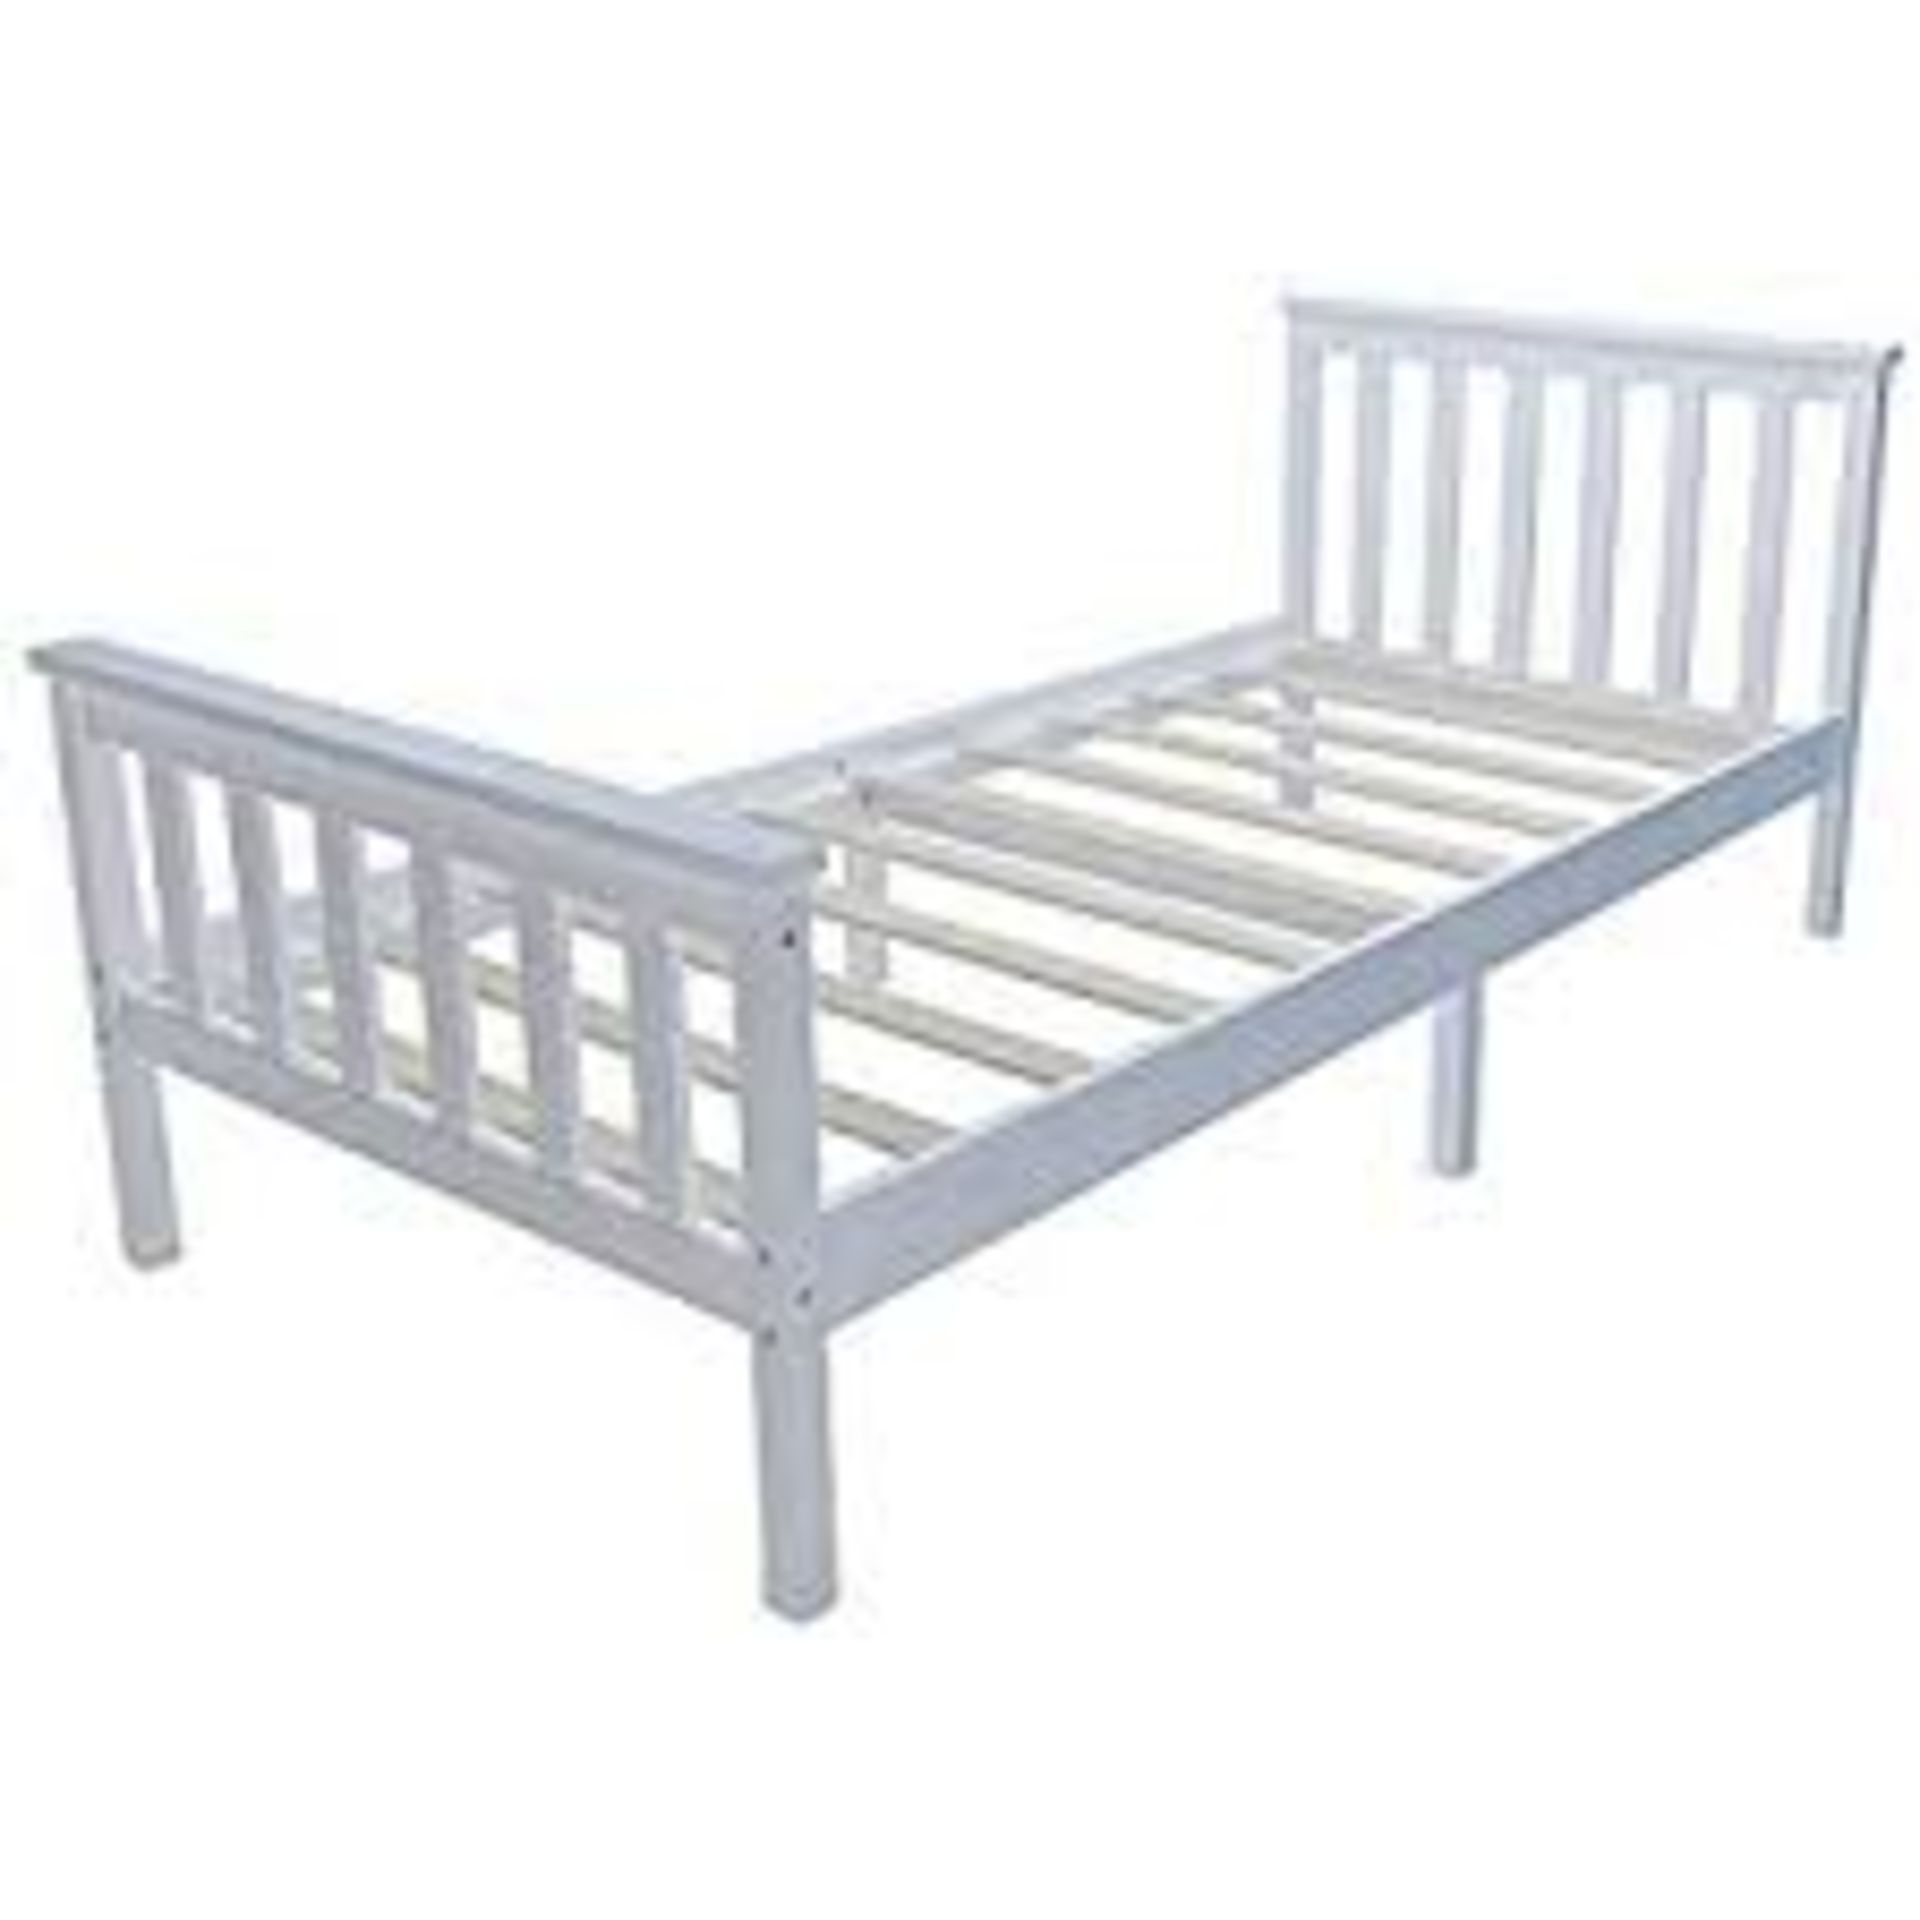 Lot 5 - Boxed Pine Single Bed RRP £80 (18364) IMAGES ARE FOR ILLUSTRATION PURPOSES ONLY AND MAY NOT BE AN